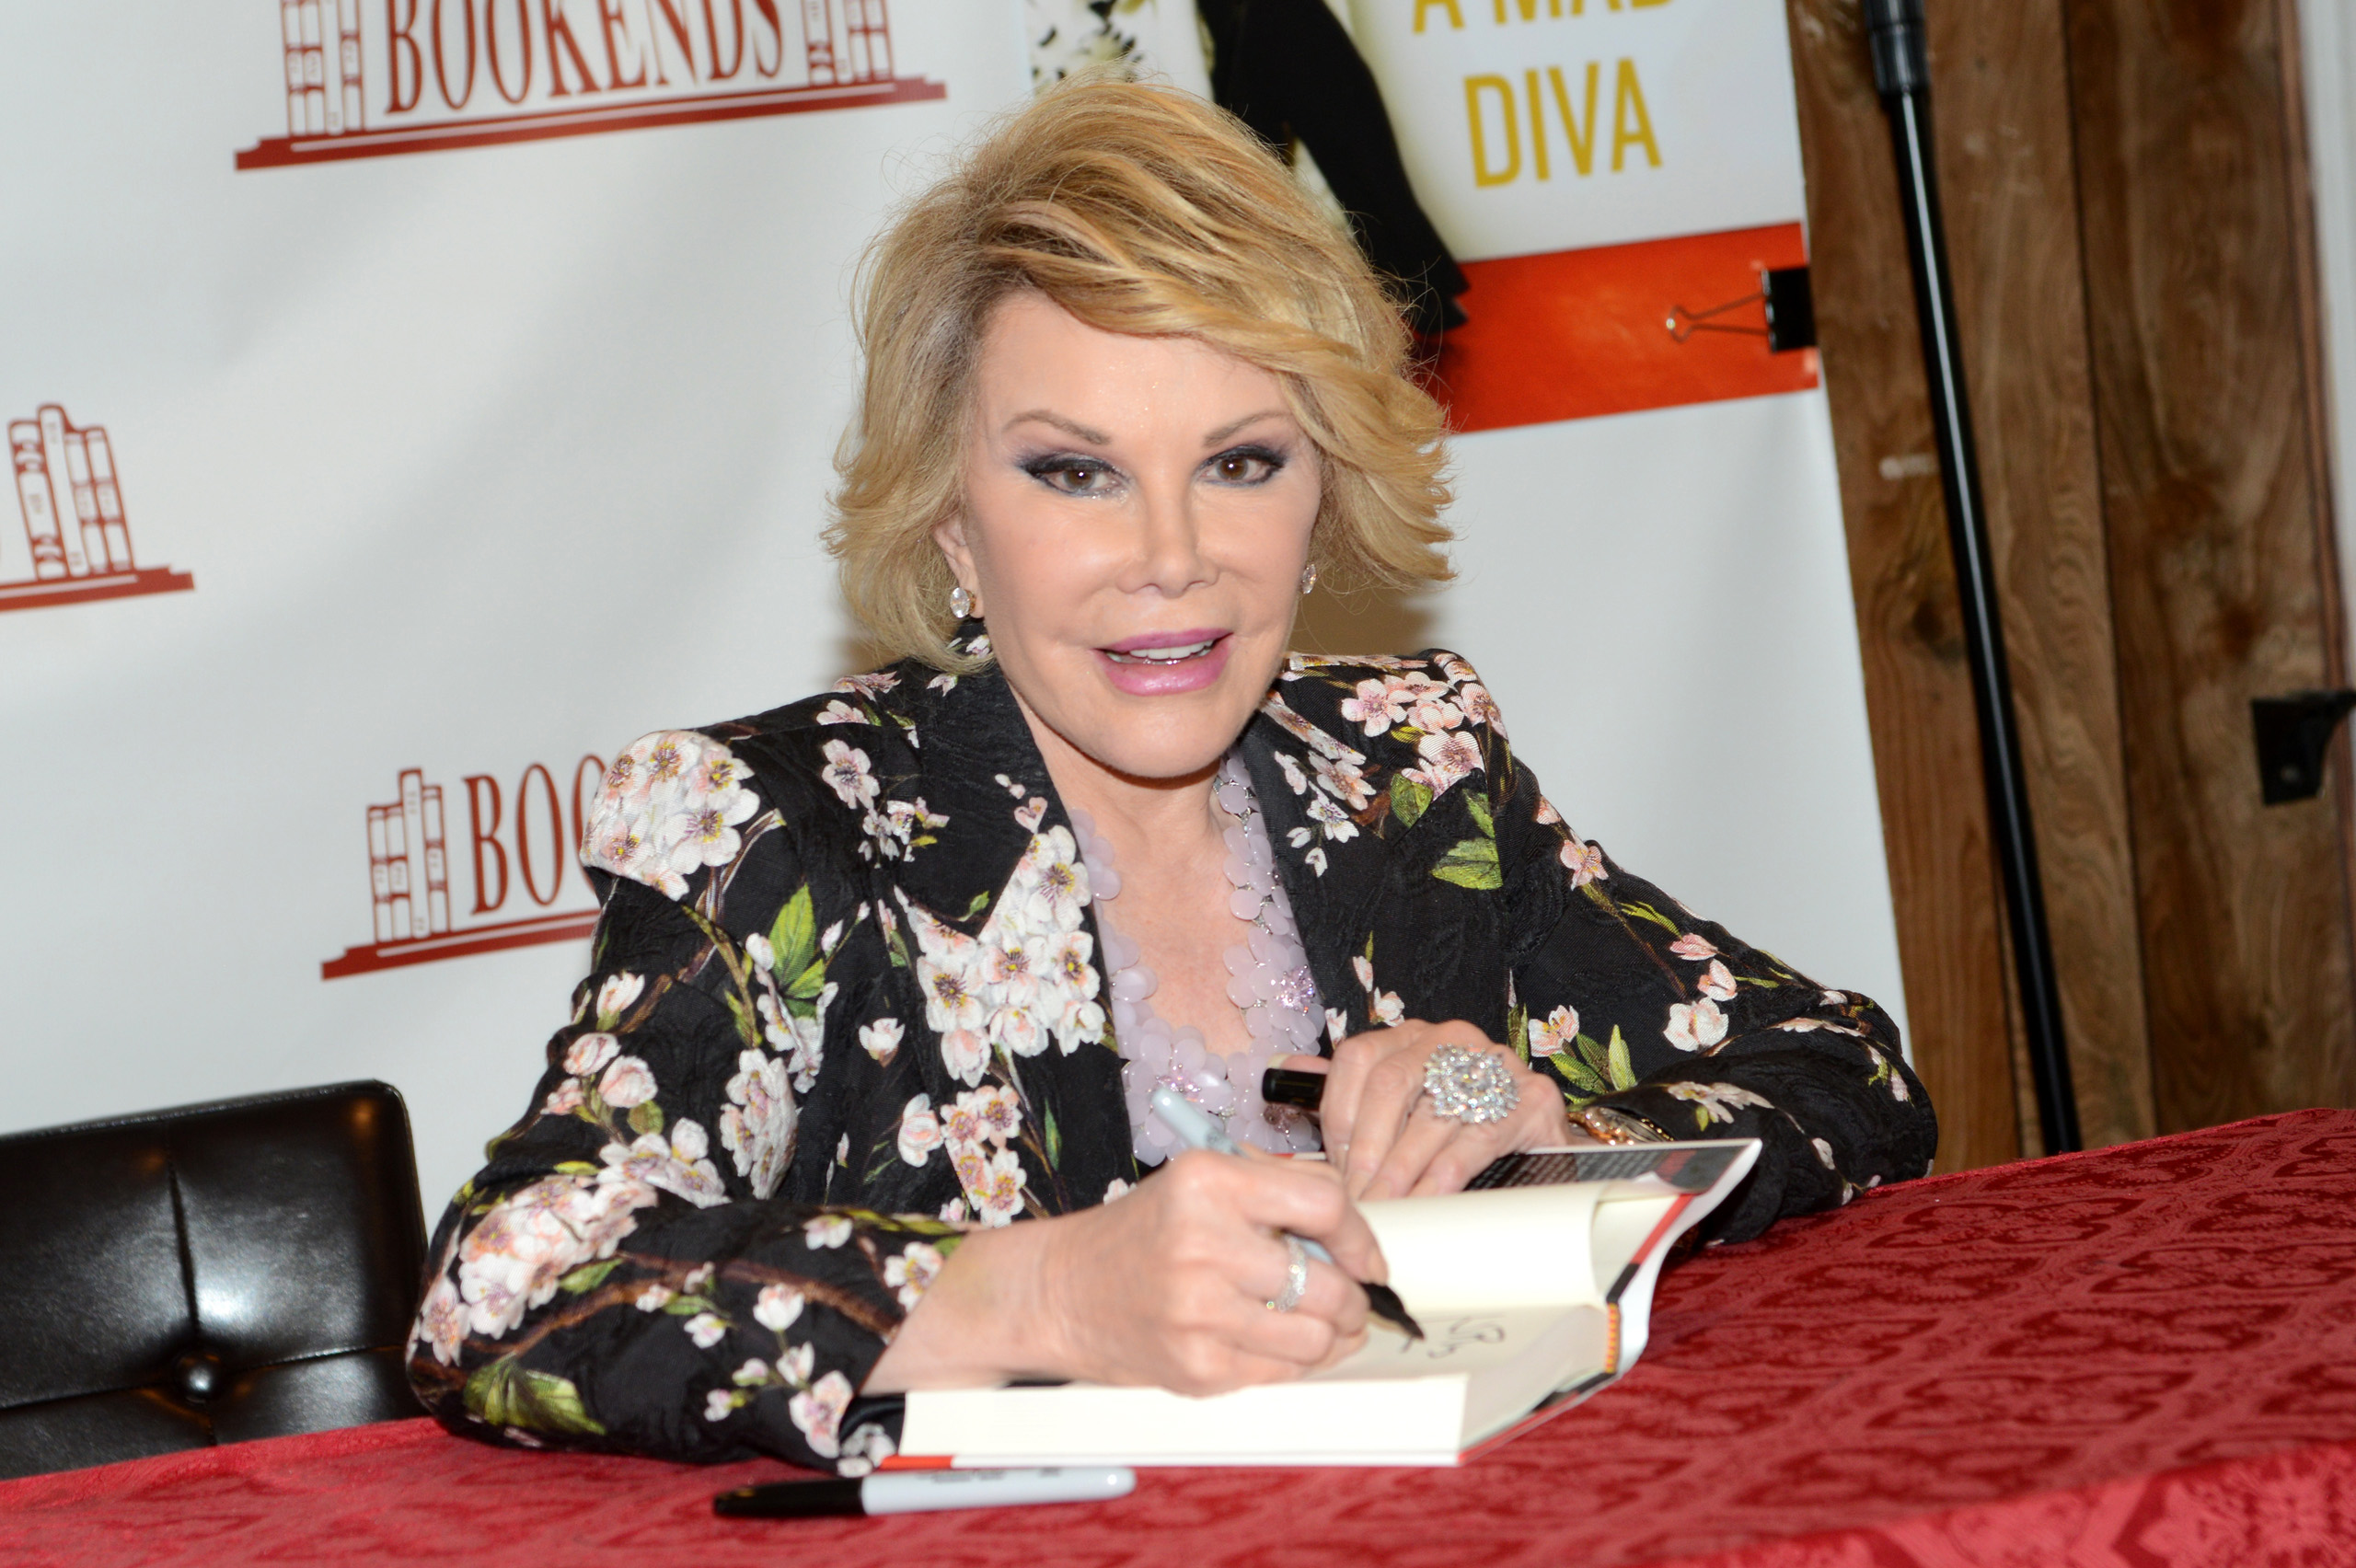 Joan Rivers promotes  Diary of a Mad Diva  at Bookends Bookstore in Ridgewood, New Jersey, July 1, 2014.